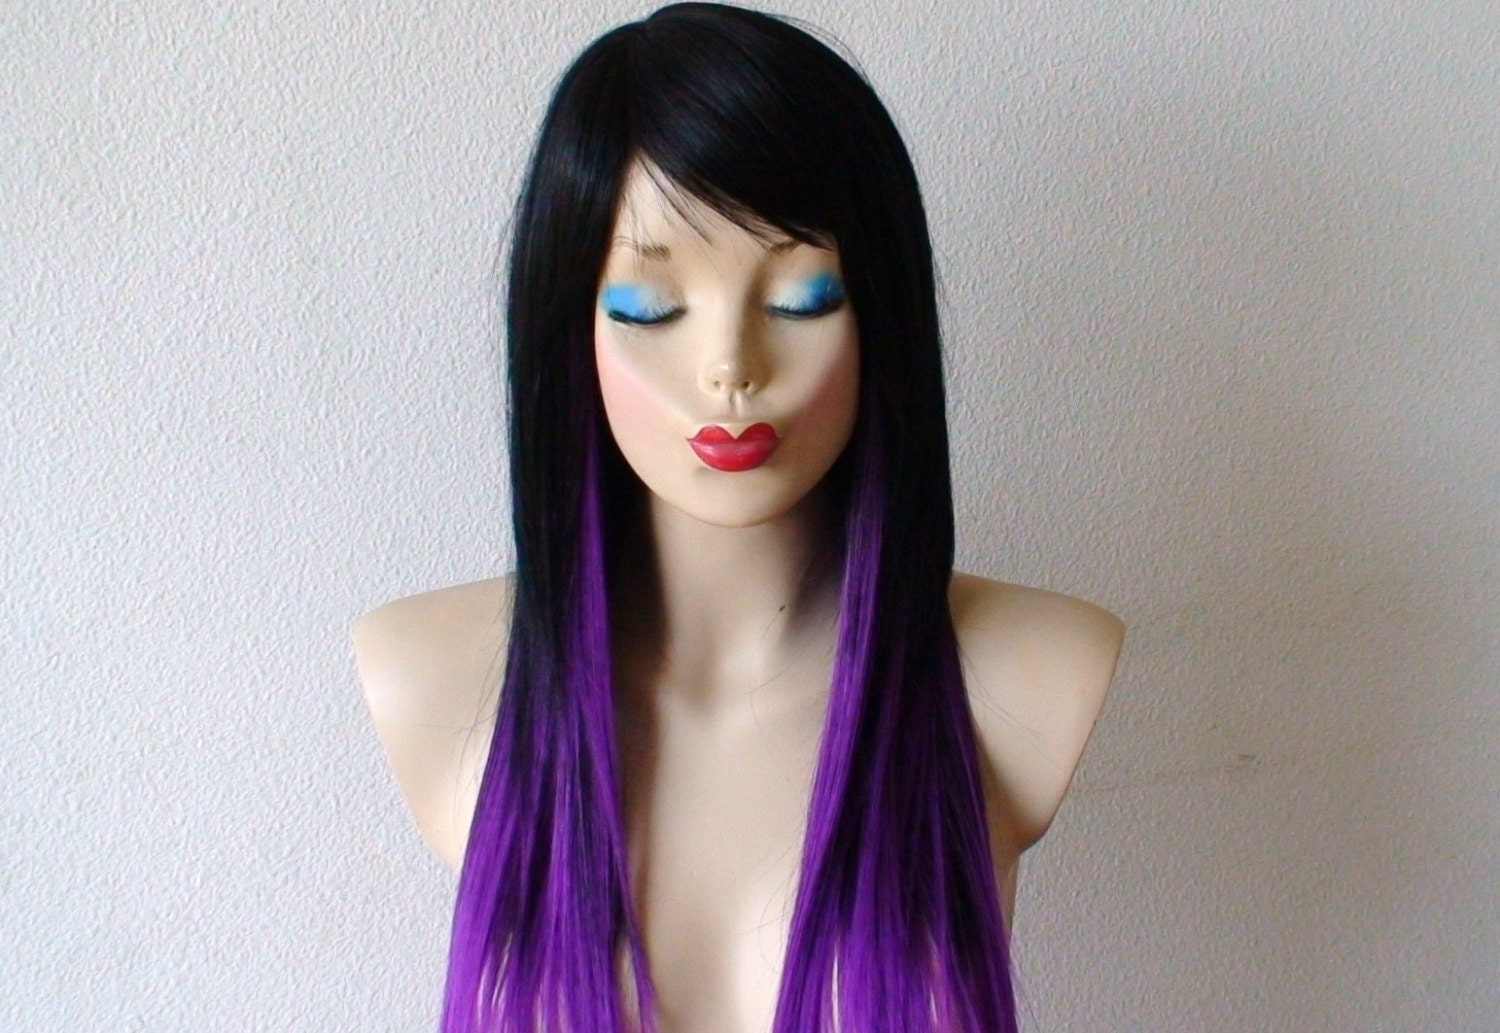 Black / Purple Ombre Wig. Long Straight Layered Hair By